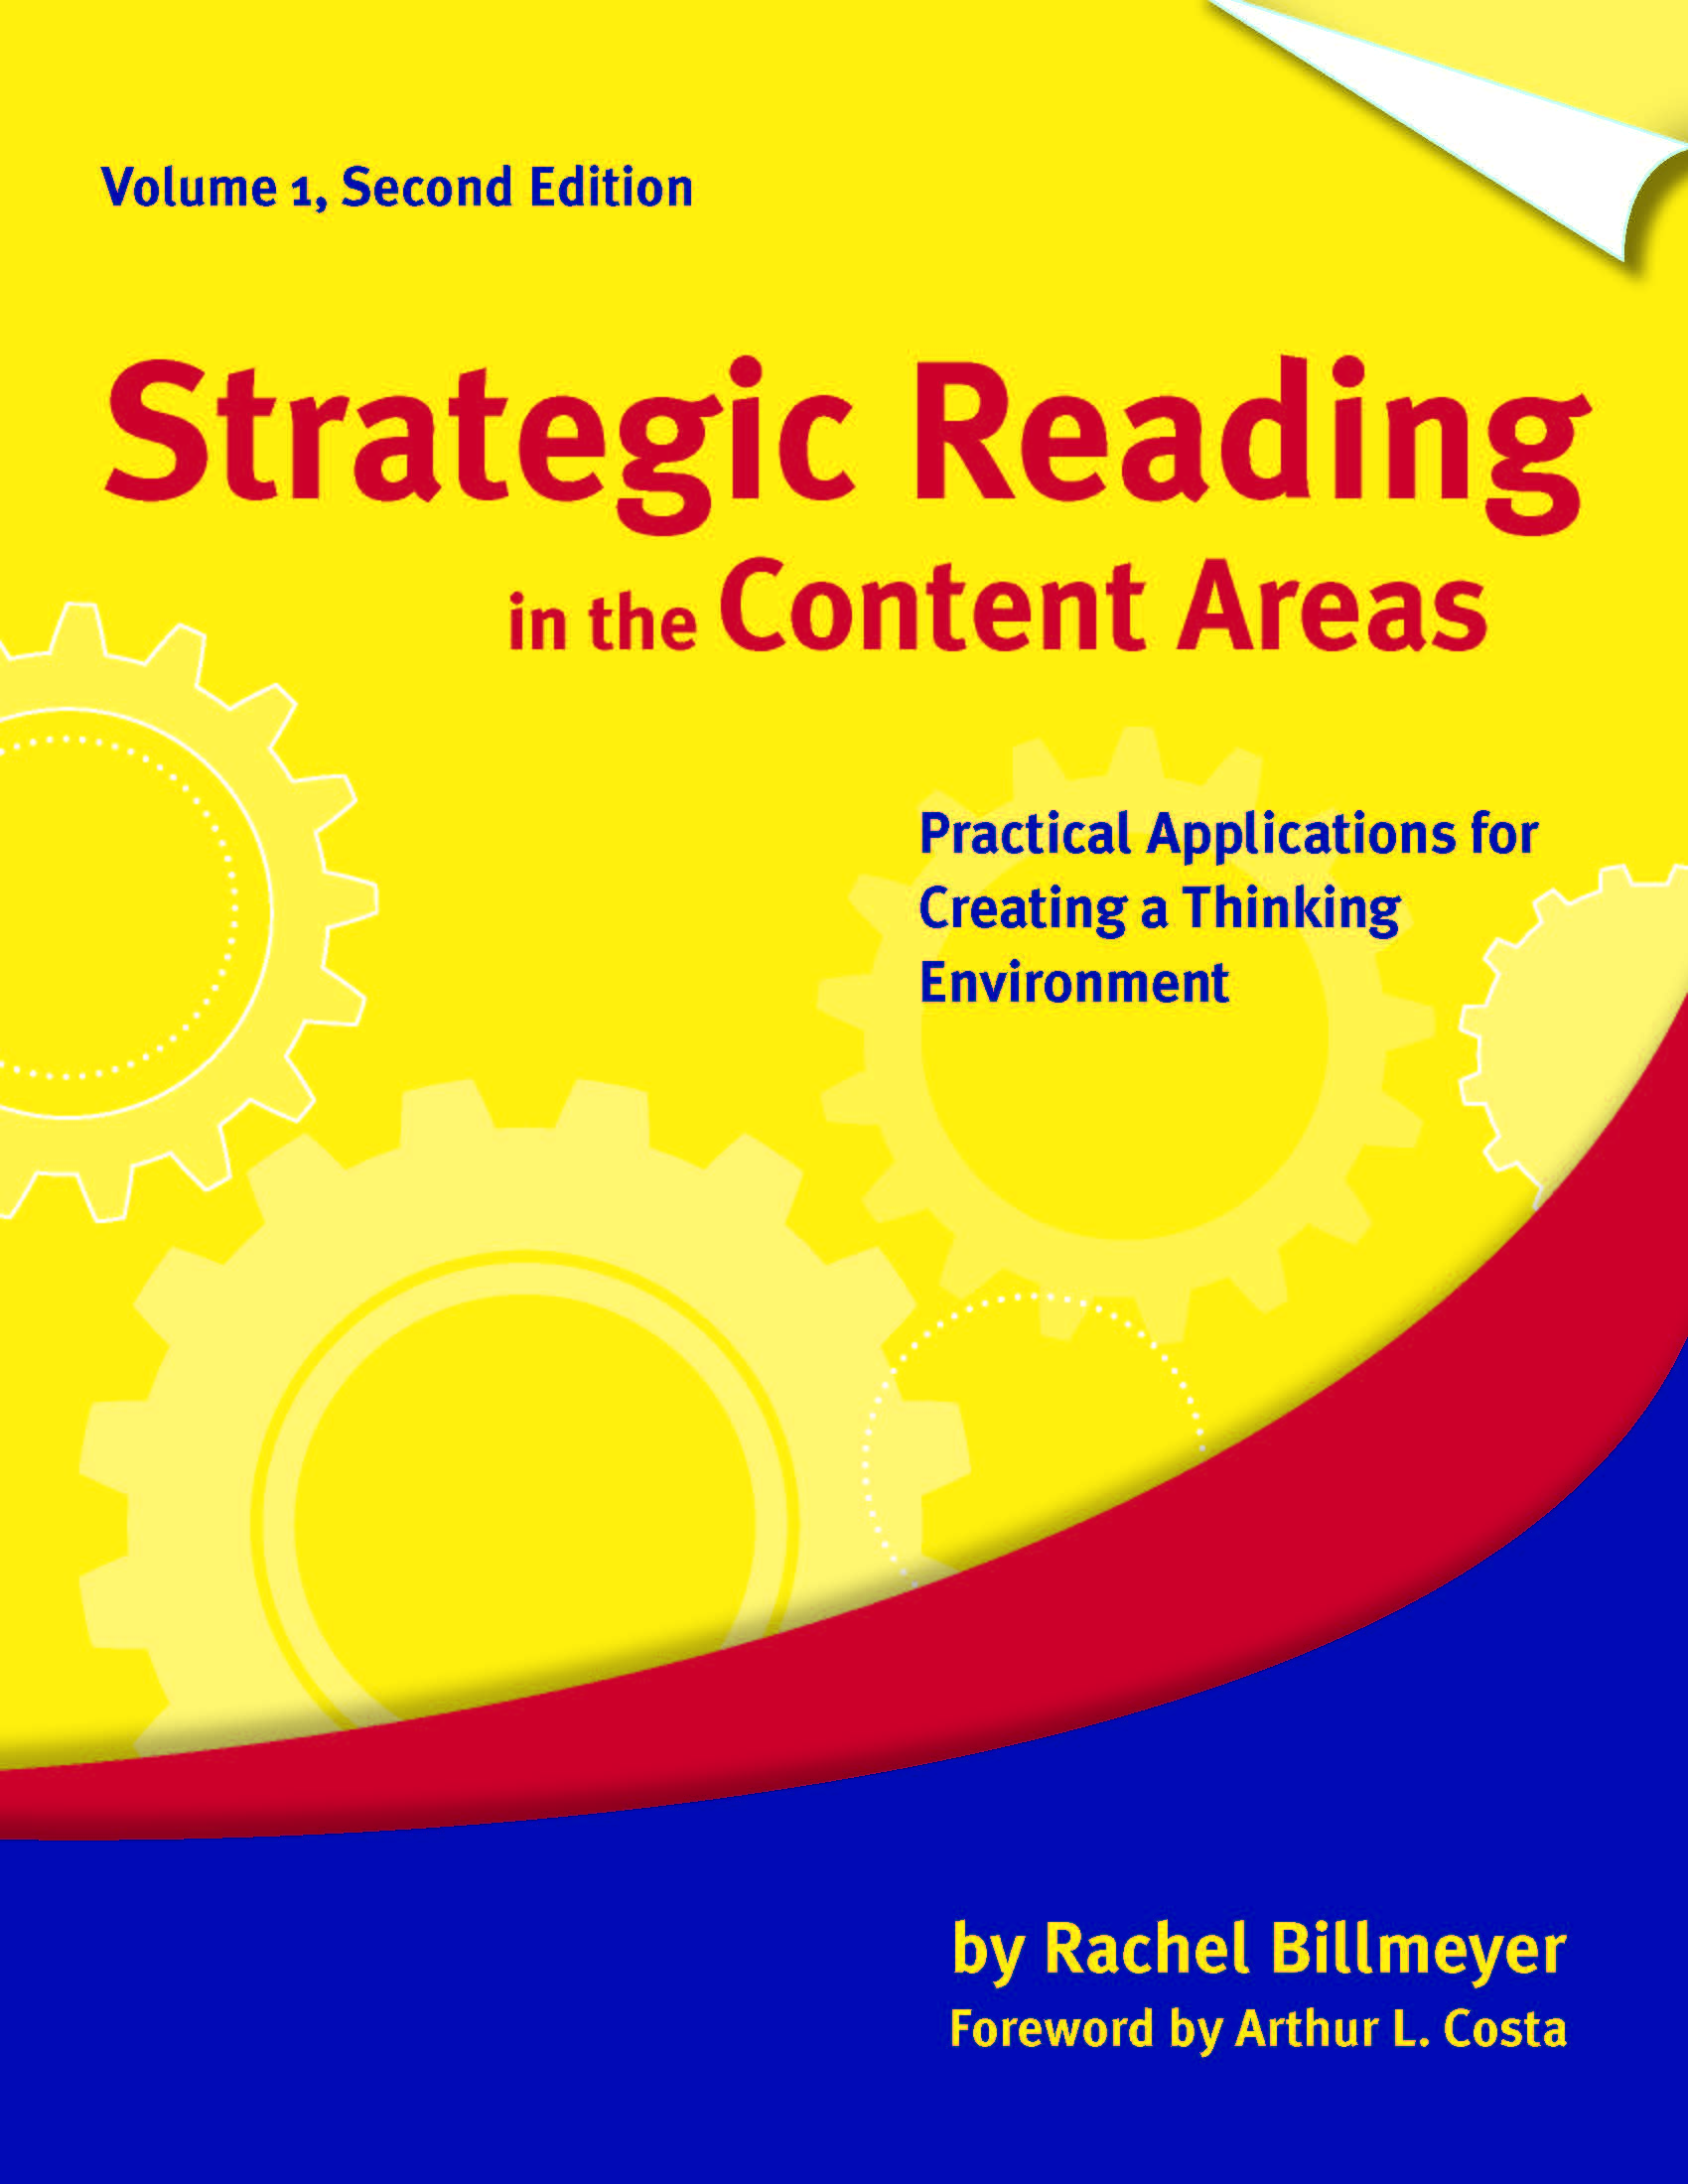 Strategic Reading in the Content Areas